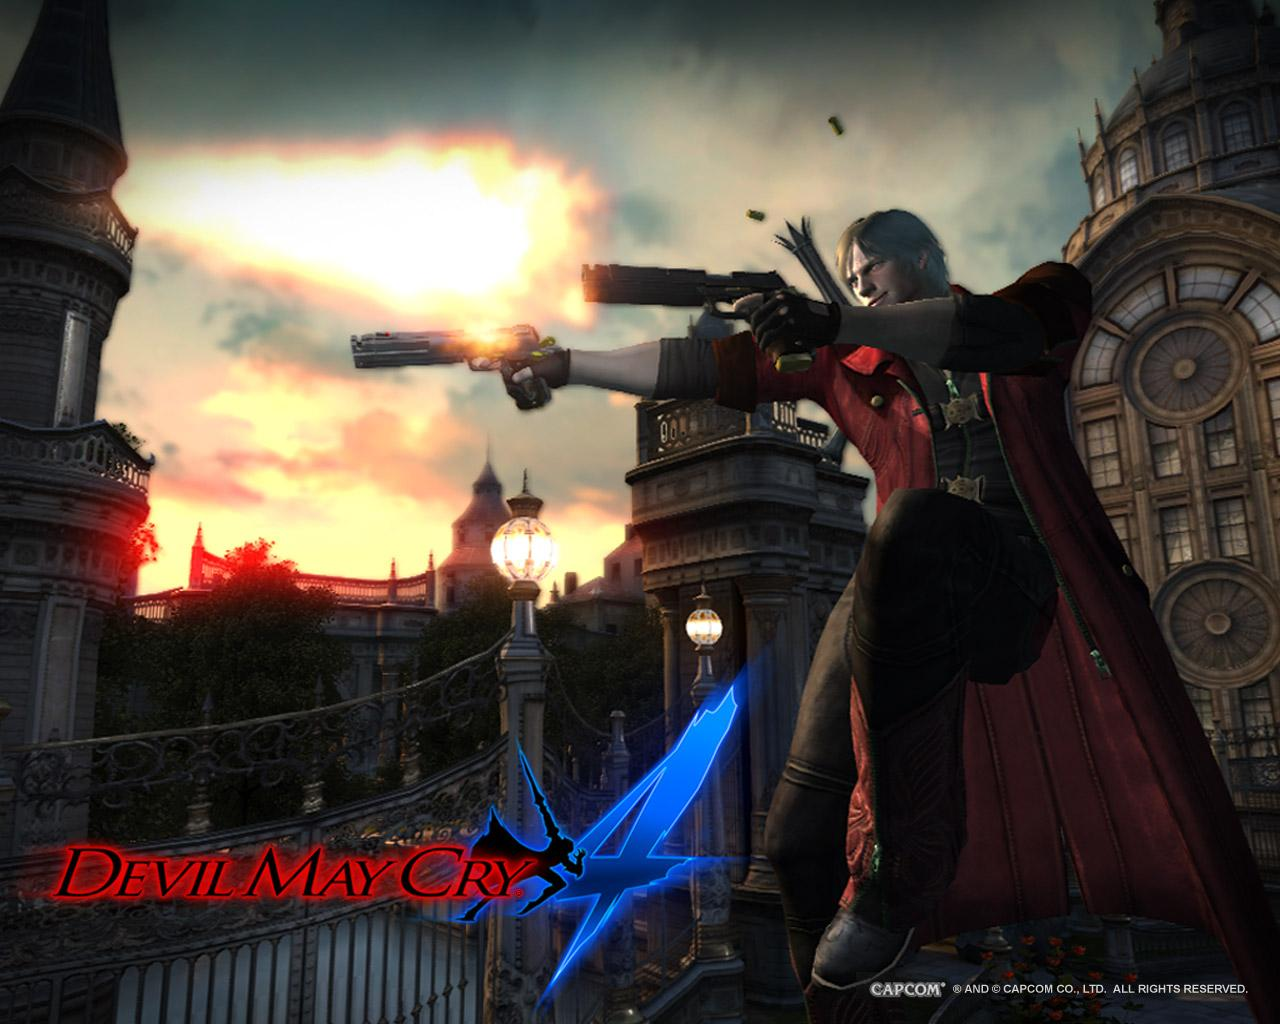 image - devilmaycry4 wallpaper 3 | devil may cry wiki | fandom